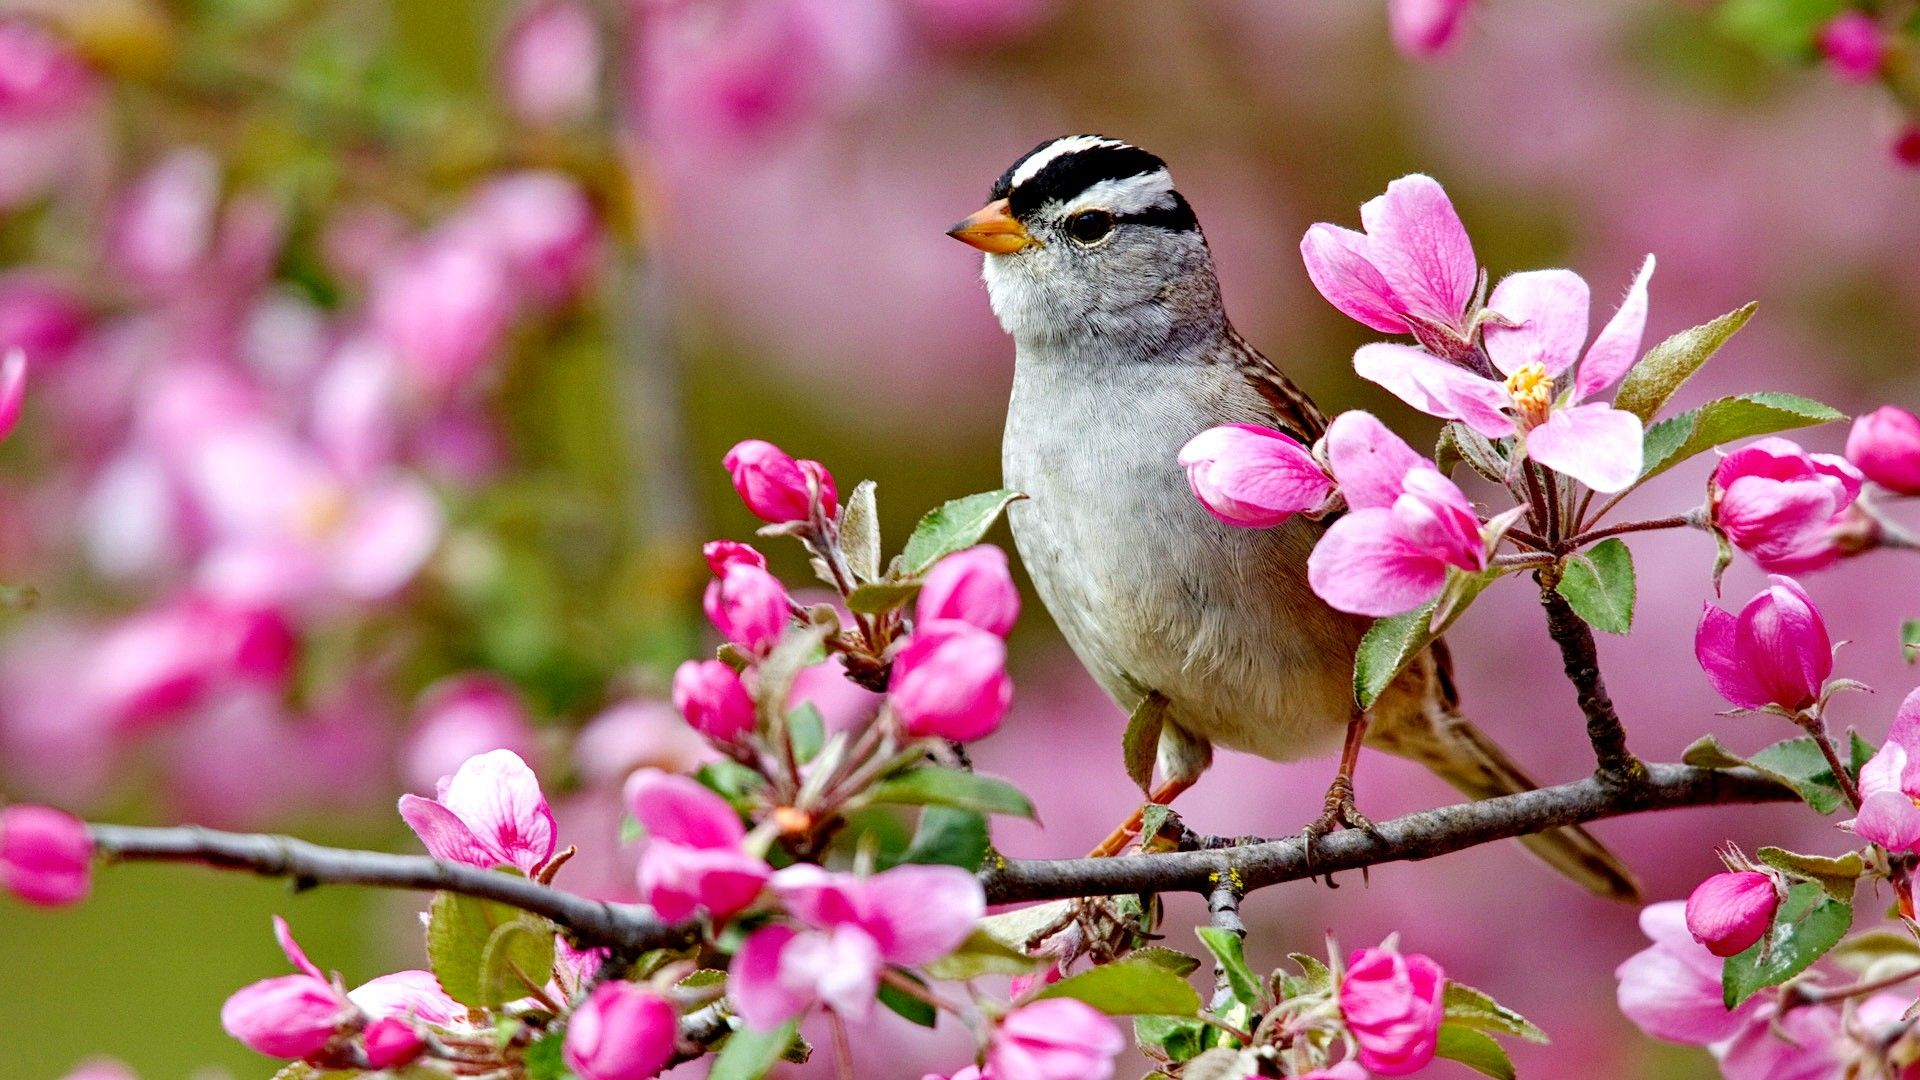 flowers: bird spring flowers colorful forces nature colors birds